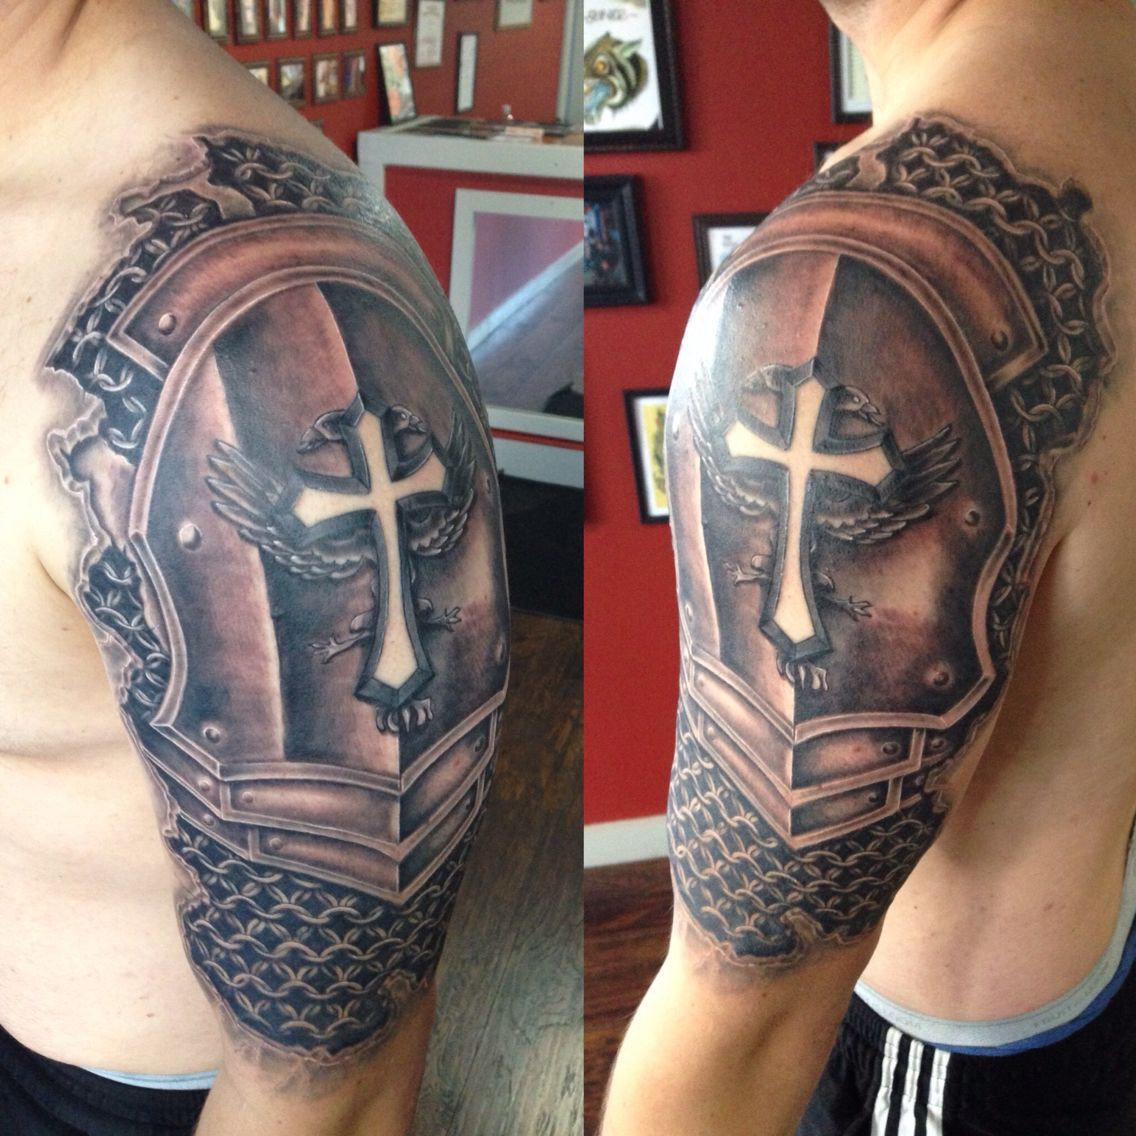 Found on Bing from Armor sleeve tattoo